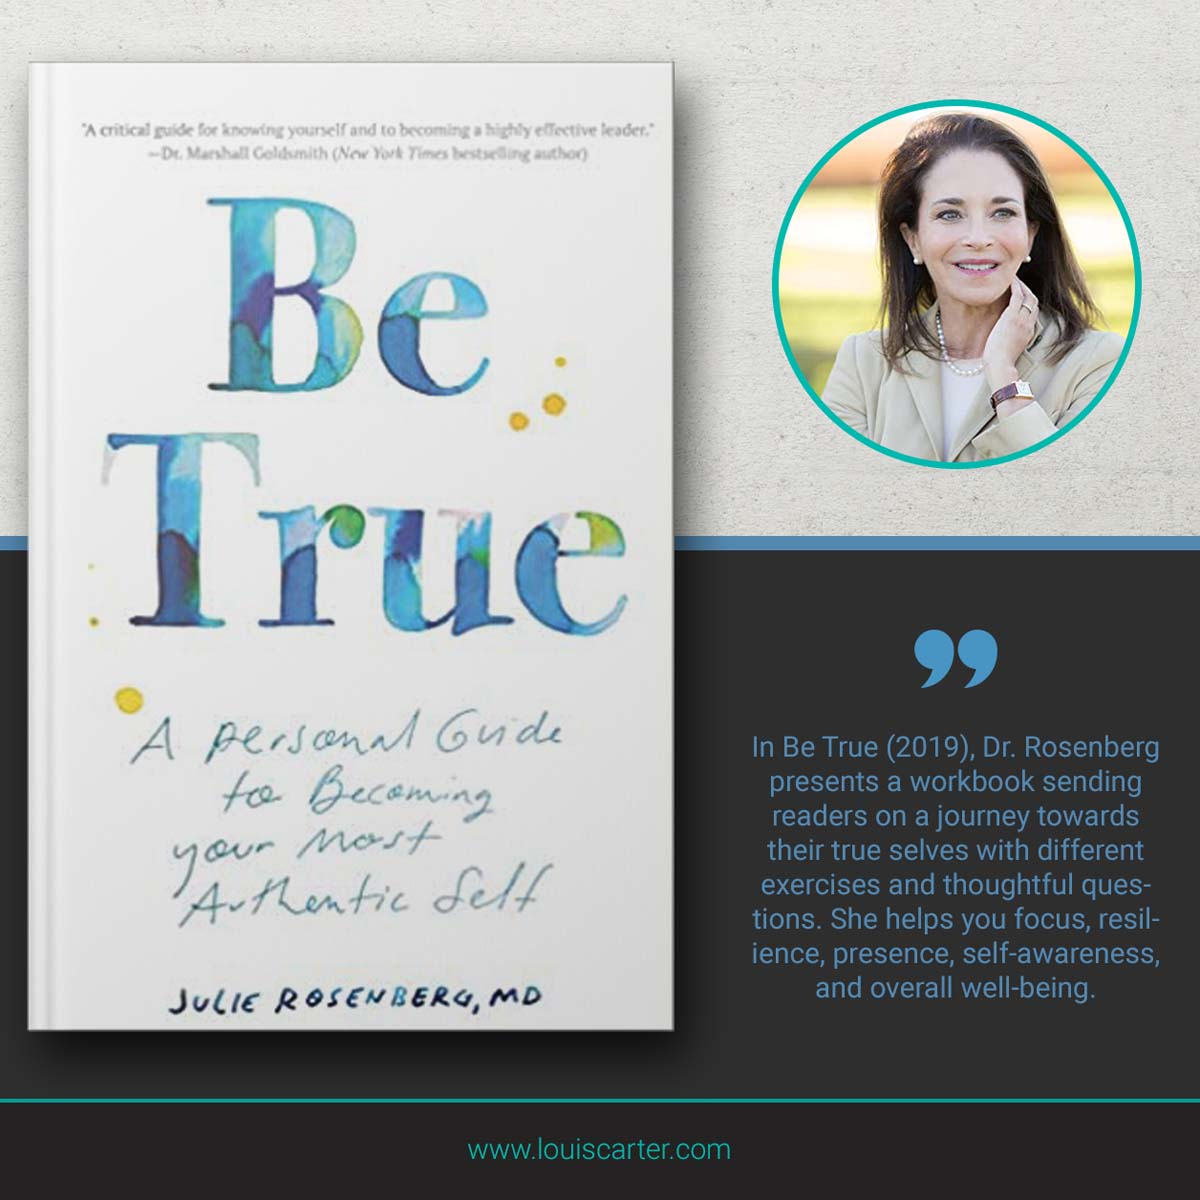 Picture of Be True Leadership books by Julie Rosenberg, MD.